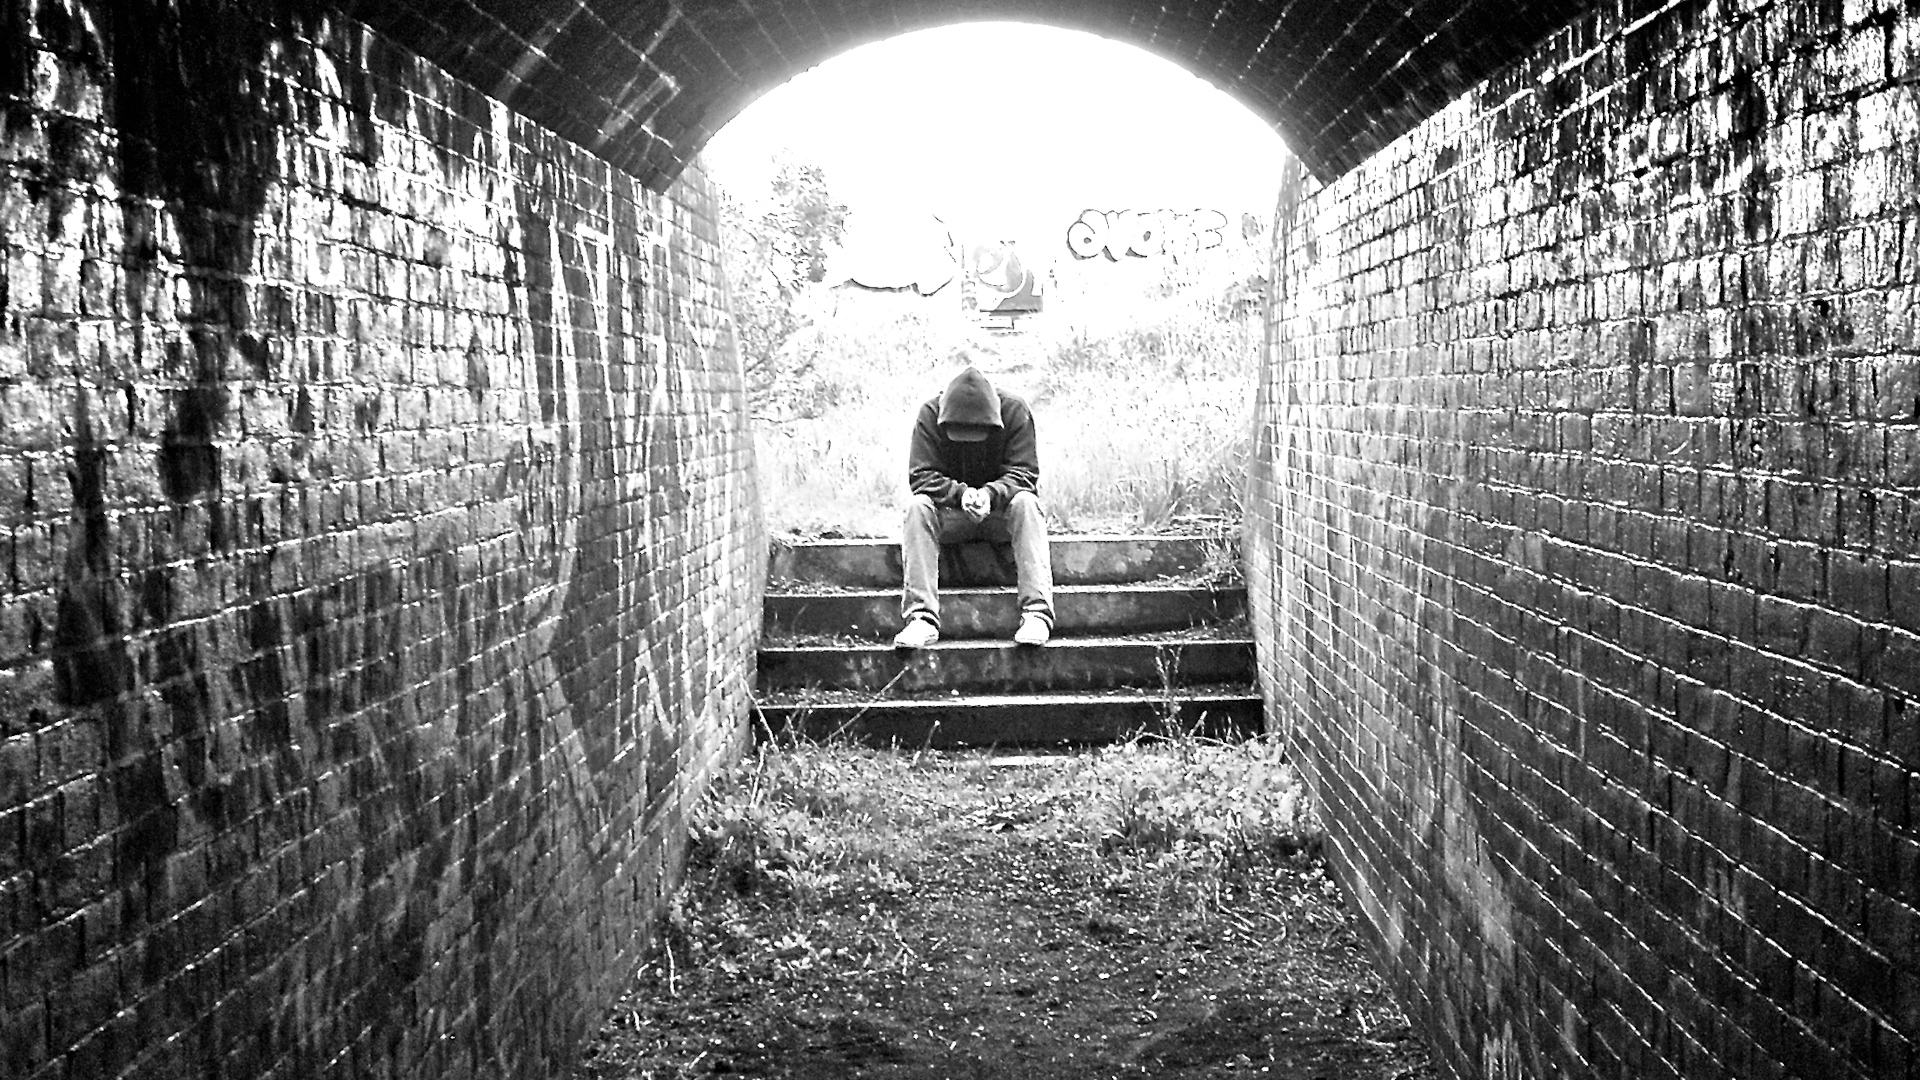 Original photography, 'Tunnel Vision' by Jack Goshay